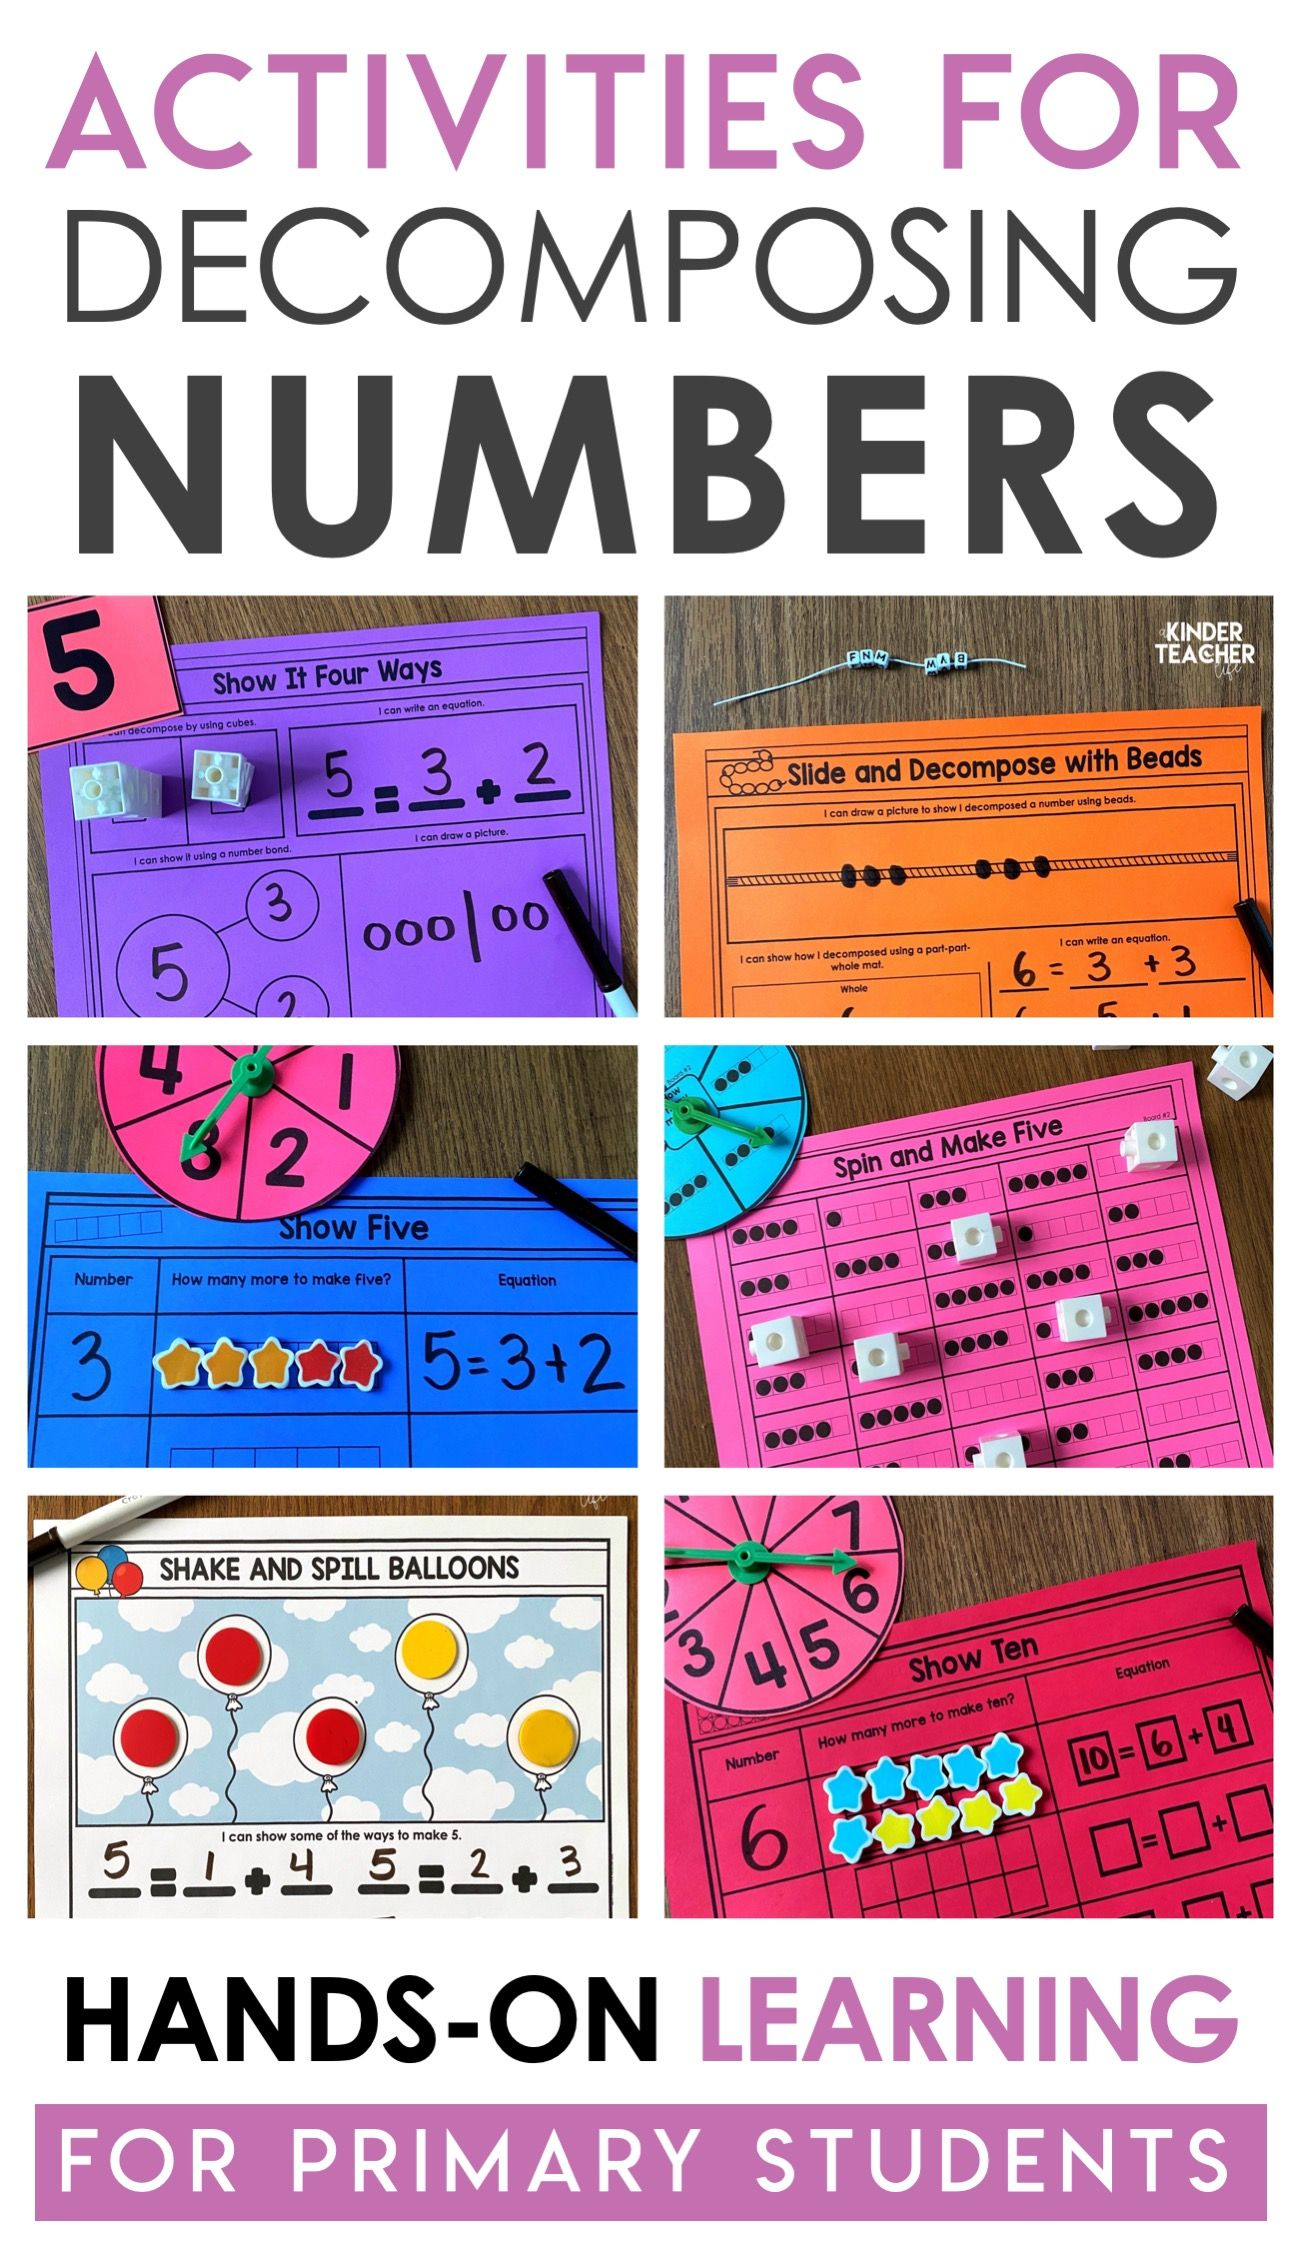 More Decomposing Numbers Activities